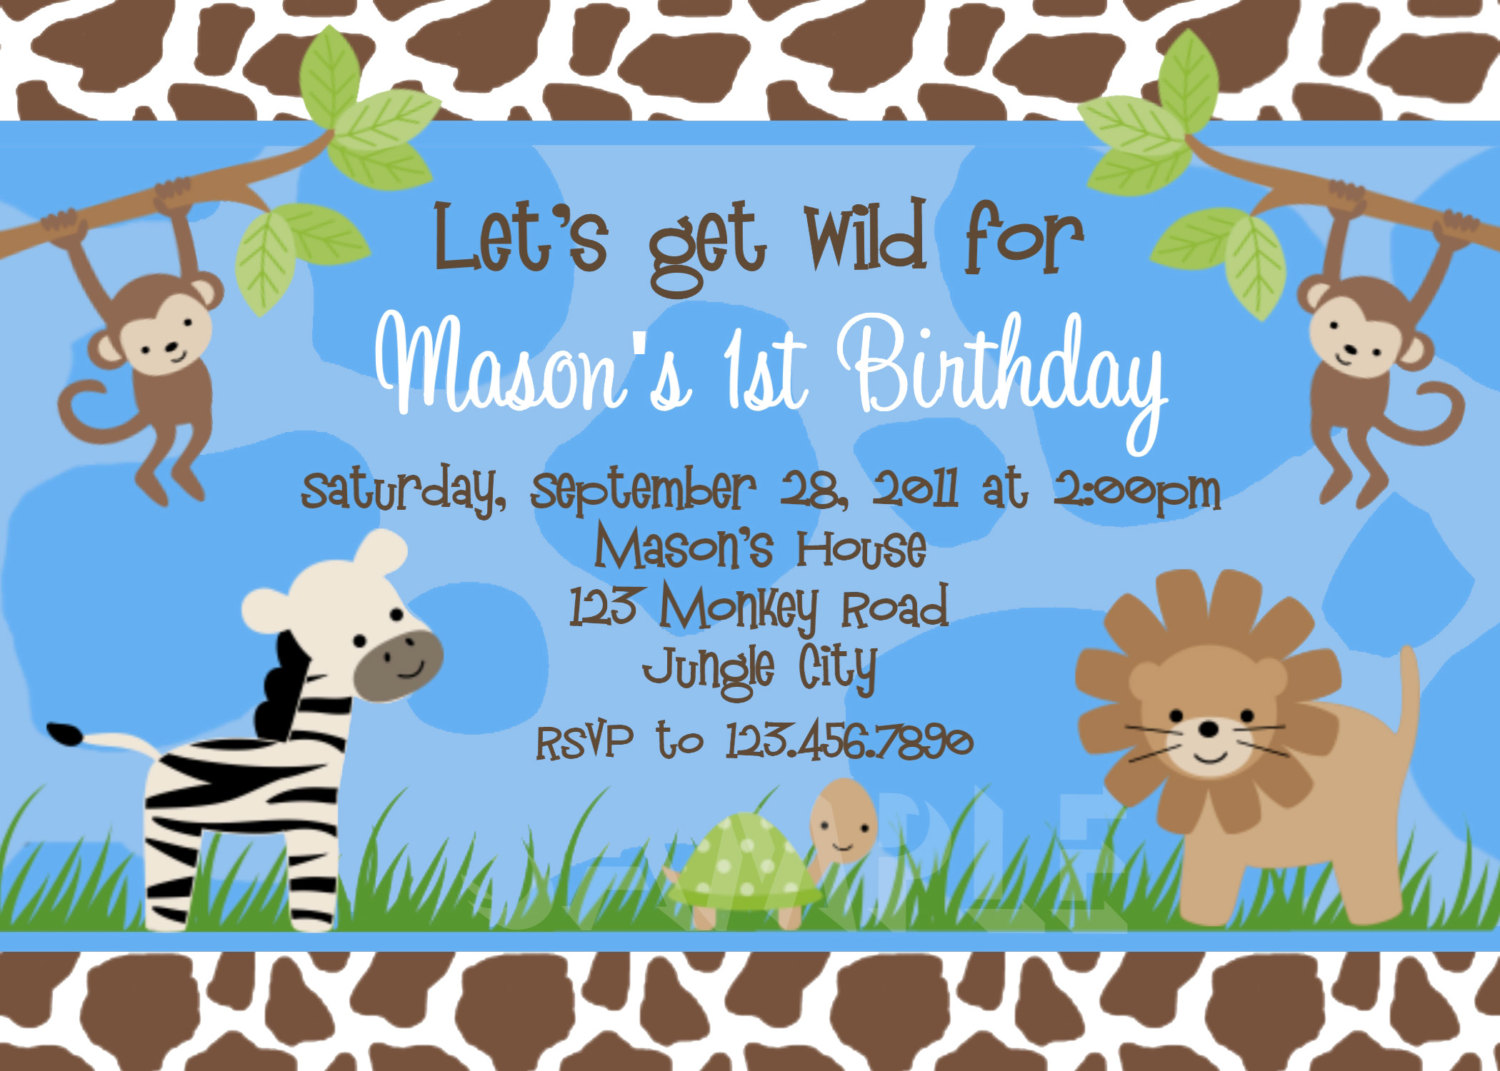 boy birthday invitations net birthday invitations jungle st party invites birthday party birthday invitations middot boy fun birthday printable